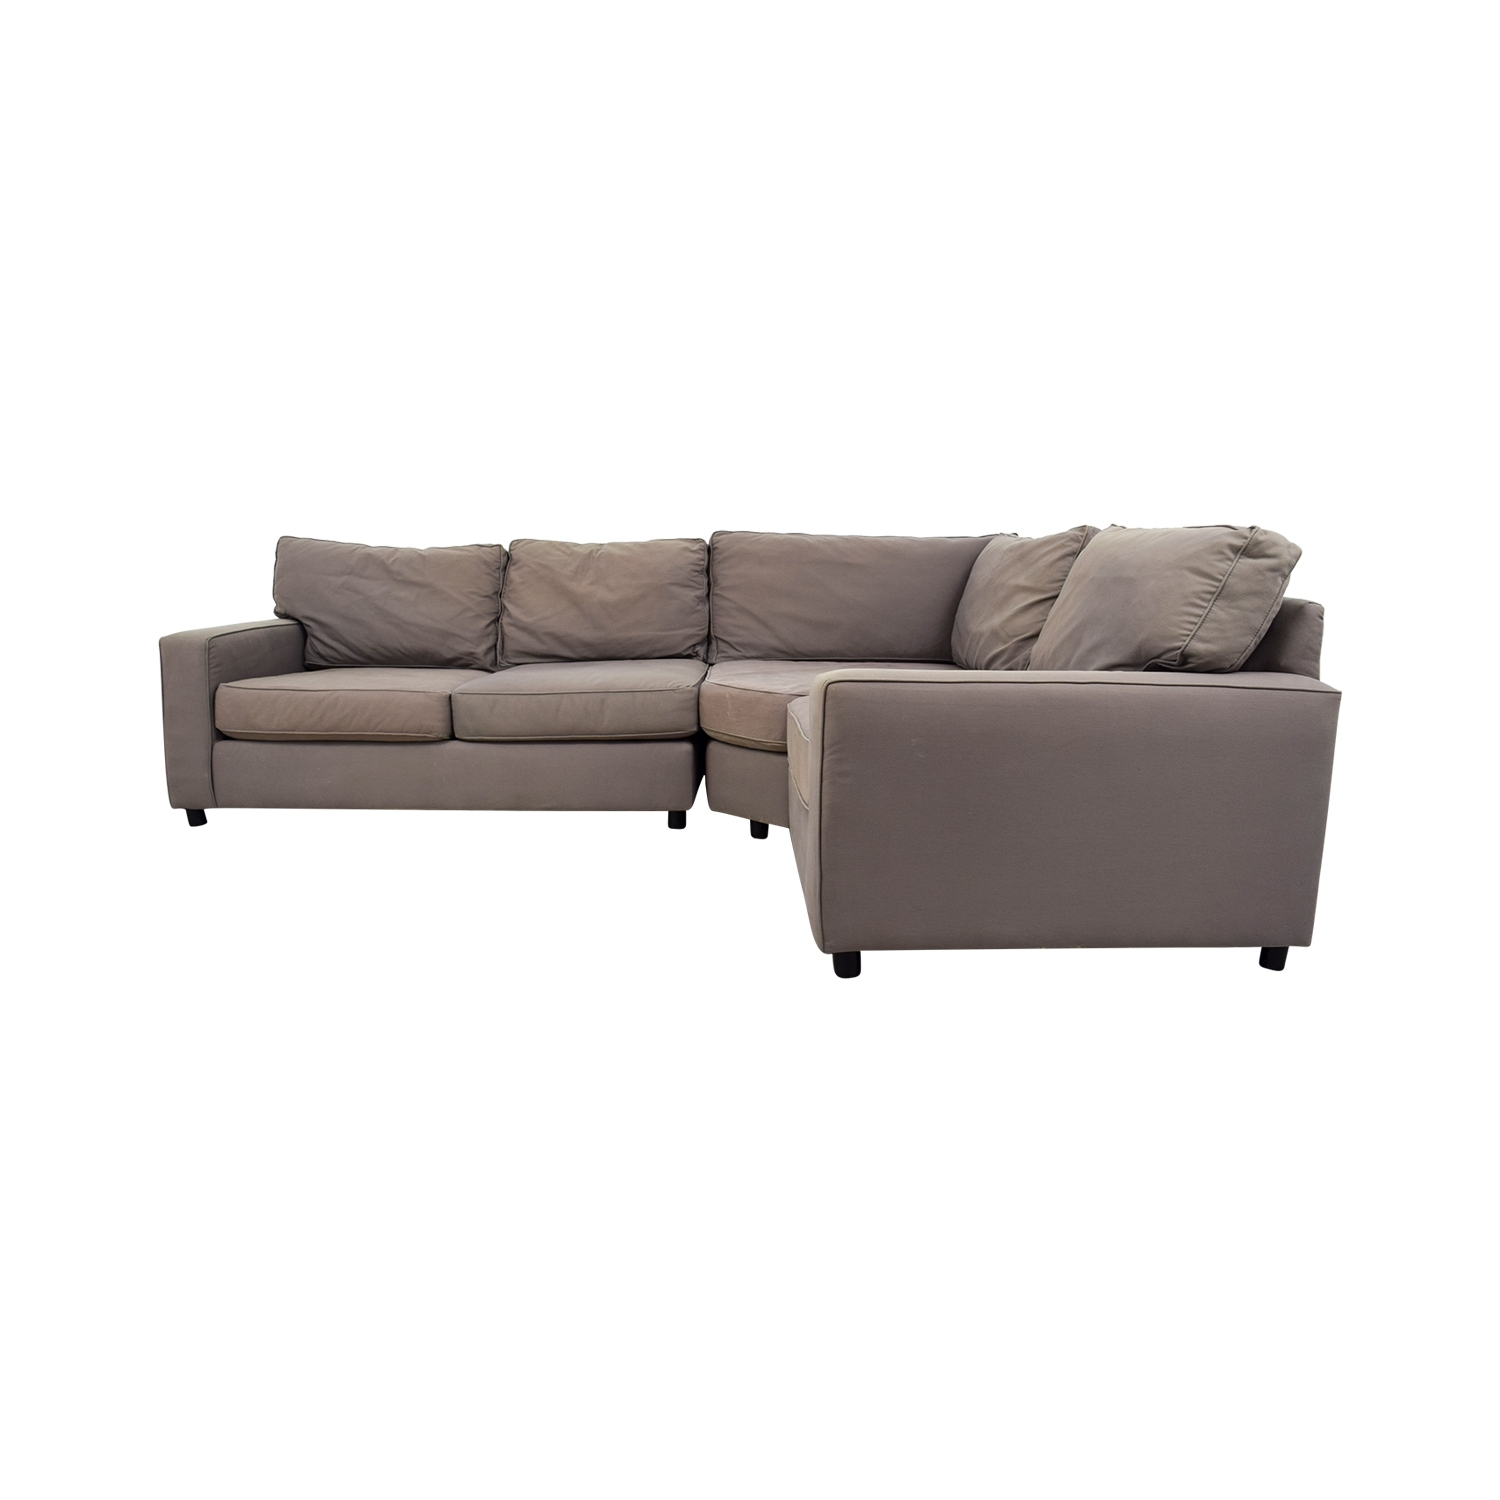 [%90% Off – Pottery Barn Pottery Barn Grey Sectional Sofa / Sofas Within Trendy Used Sectional Sofas|Used Sectional Sofas Throughout Well Known 90% Off – Pottery Barn Pottery Barn Grey Sectional Sofa / Sofas|Newest Used Sectional Sofas Regarding 90% Off – Pottery Barn Pottery Barn Grey Sectional Sofa / Sofas|Latest 90% Off – Pottery Barn Pottery Barn Grey Sectional Sofa / Sofas Inside Used Sectional Sofas%] (View 2 of 20)